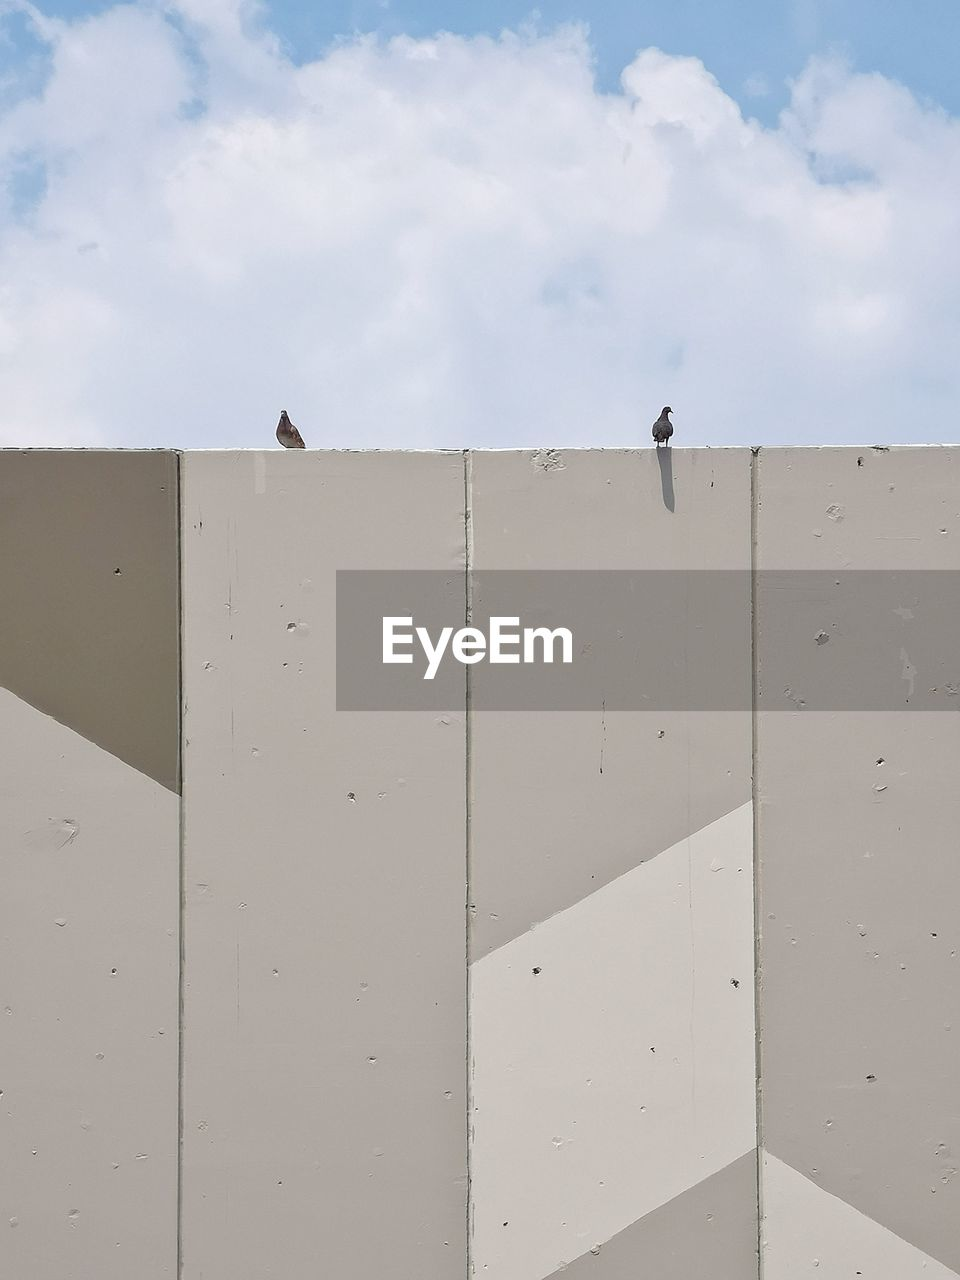 bird, sky, architecture, built structure, cloud - sky, vertebrate, animal themes, animal, animals in the wild, wall - building feature, no people, animal wildlife, day, building exterior, nature, low angle view, group of animals, outdoors, wall, perching